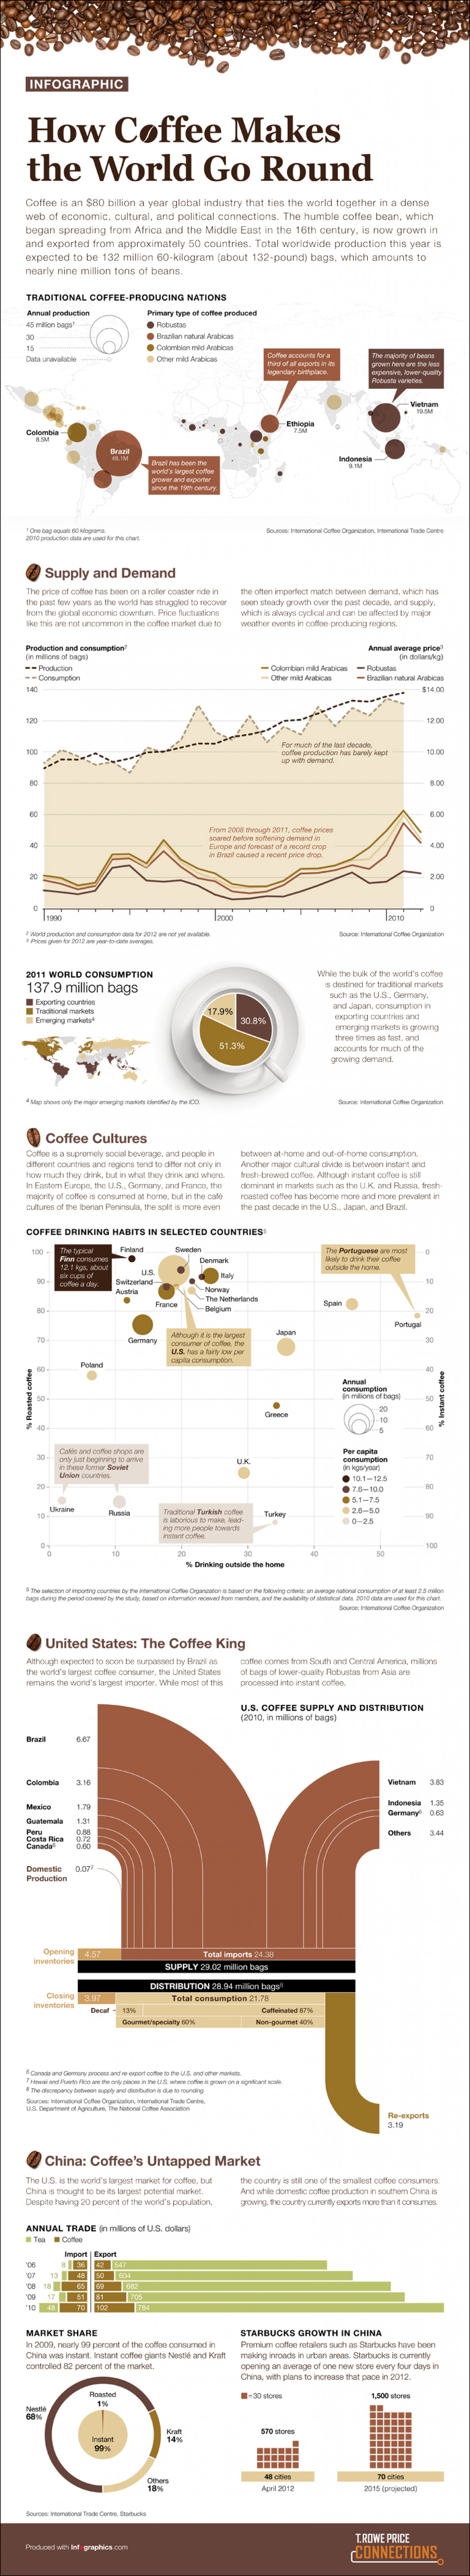 How Coffee Makes the World Go Round Infographic